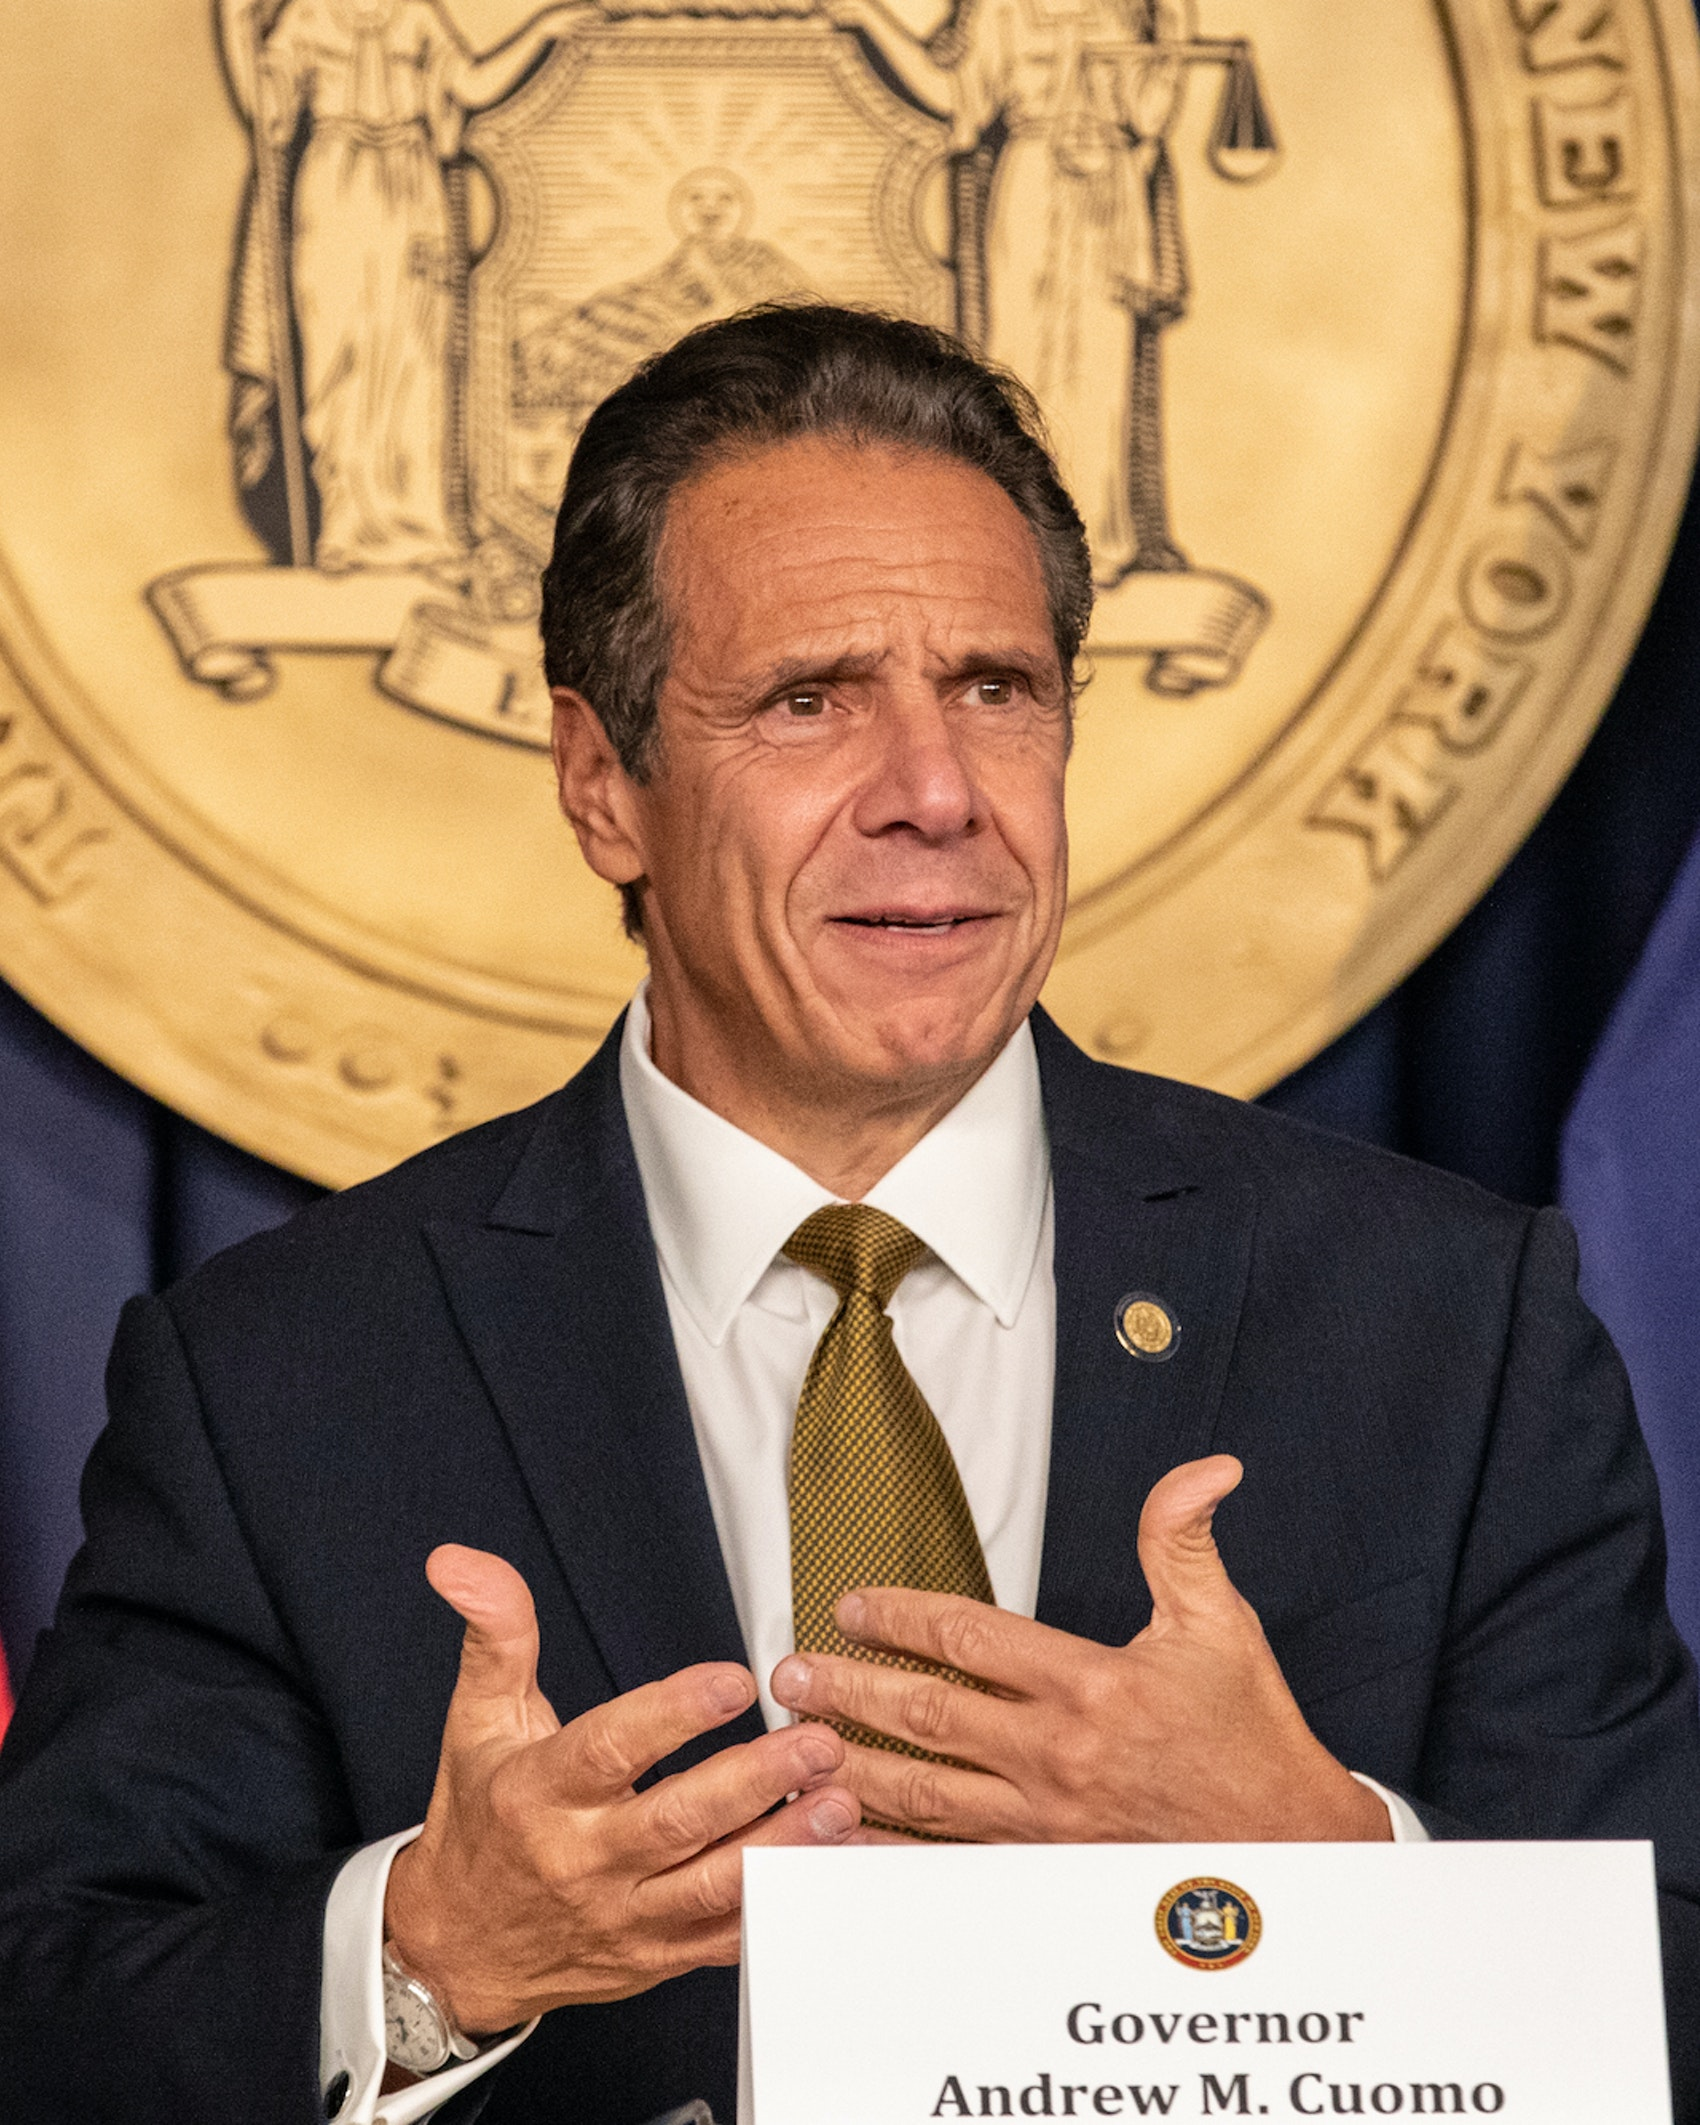 Andrew Cuomo, governor of New York, speaks during a news conference in New York, U.S., on Monday, Oct. 5, 2020. Governor Cuomosaid New York City public and private schools in viral hot spots must close Tuesday, and he threatened to shut religious institutions if members don't follow rules about masks and social distancing. Photographer: Jeenah Moon/Bloomberg